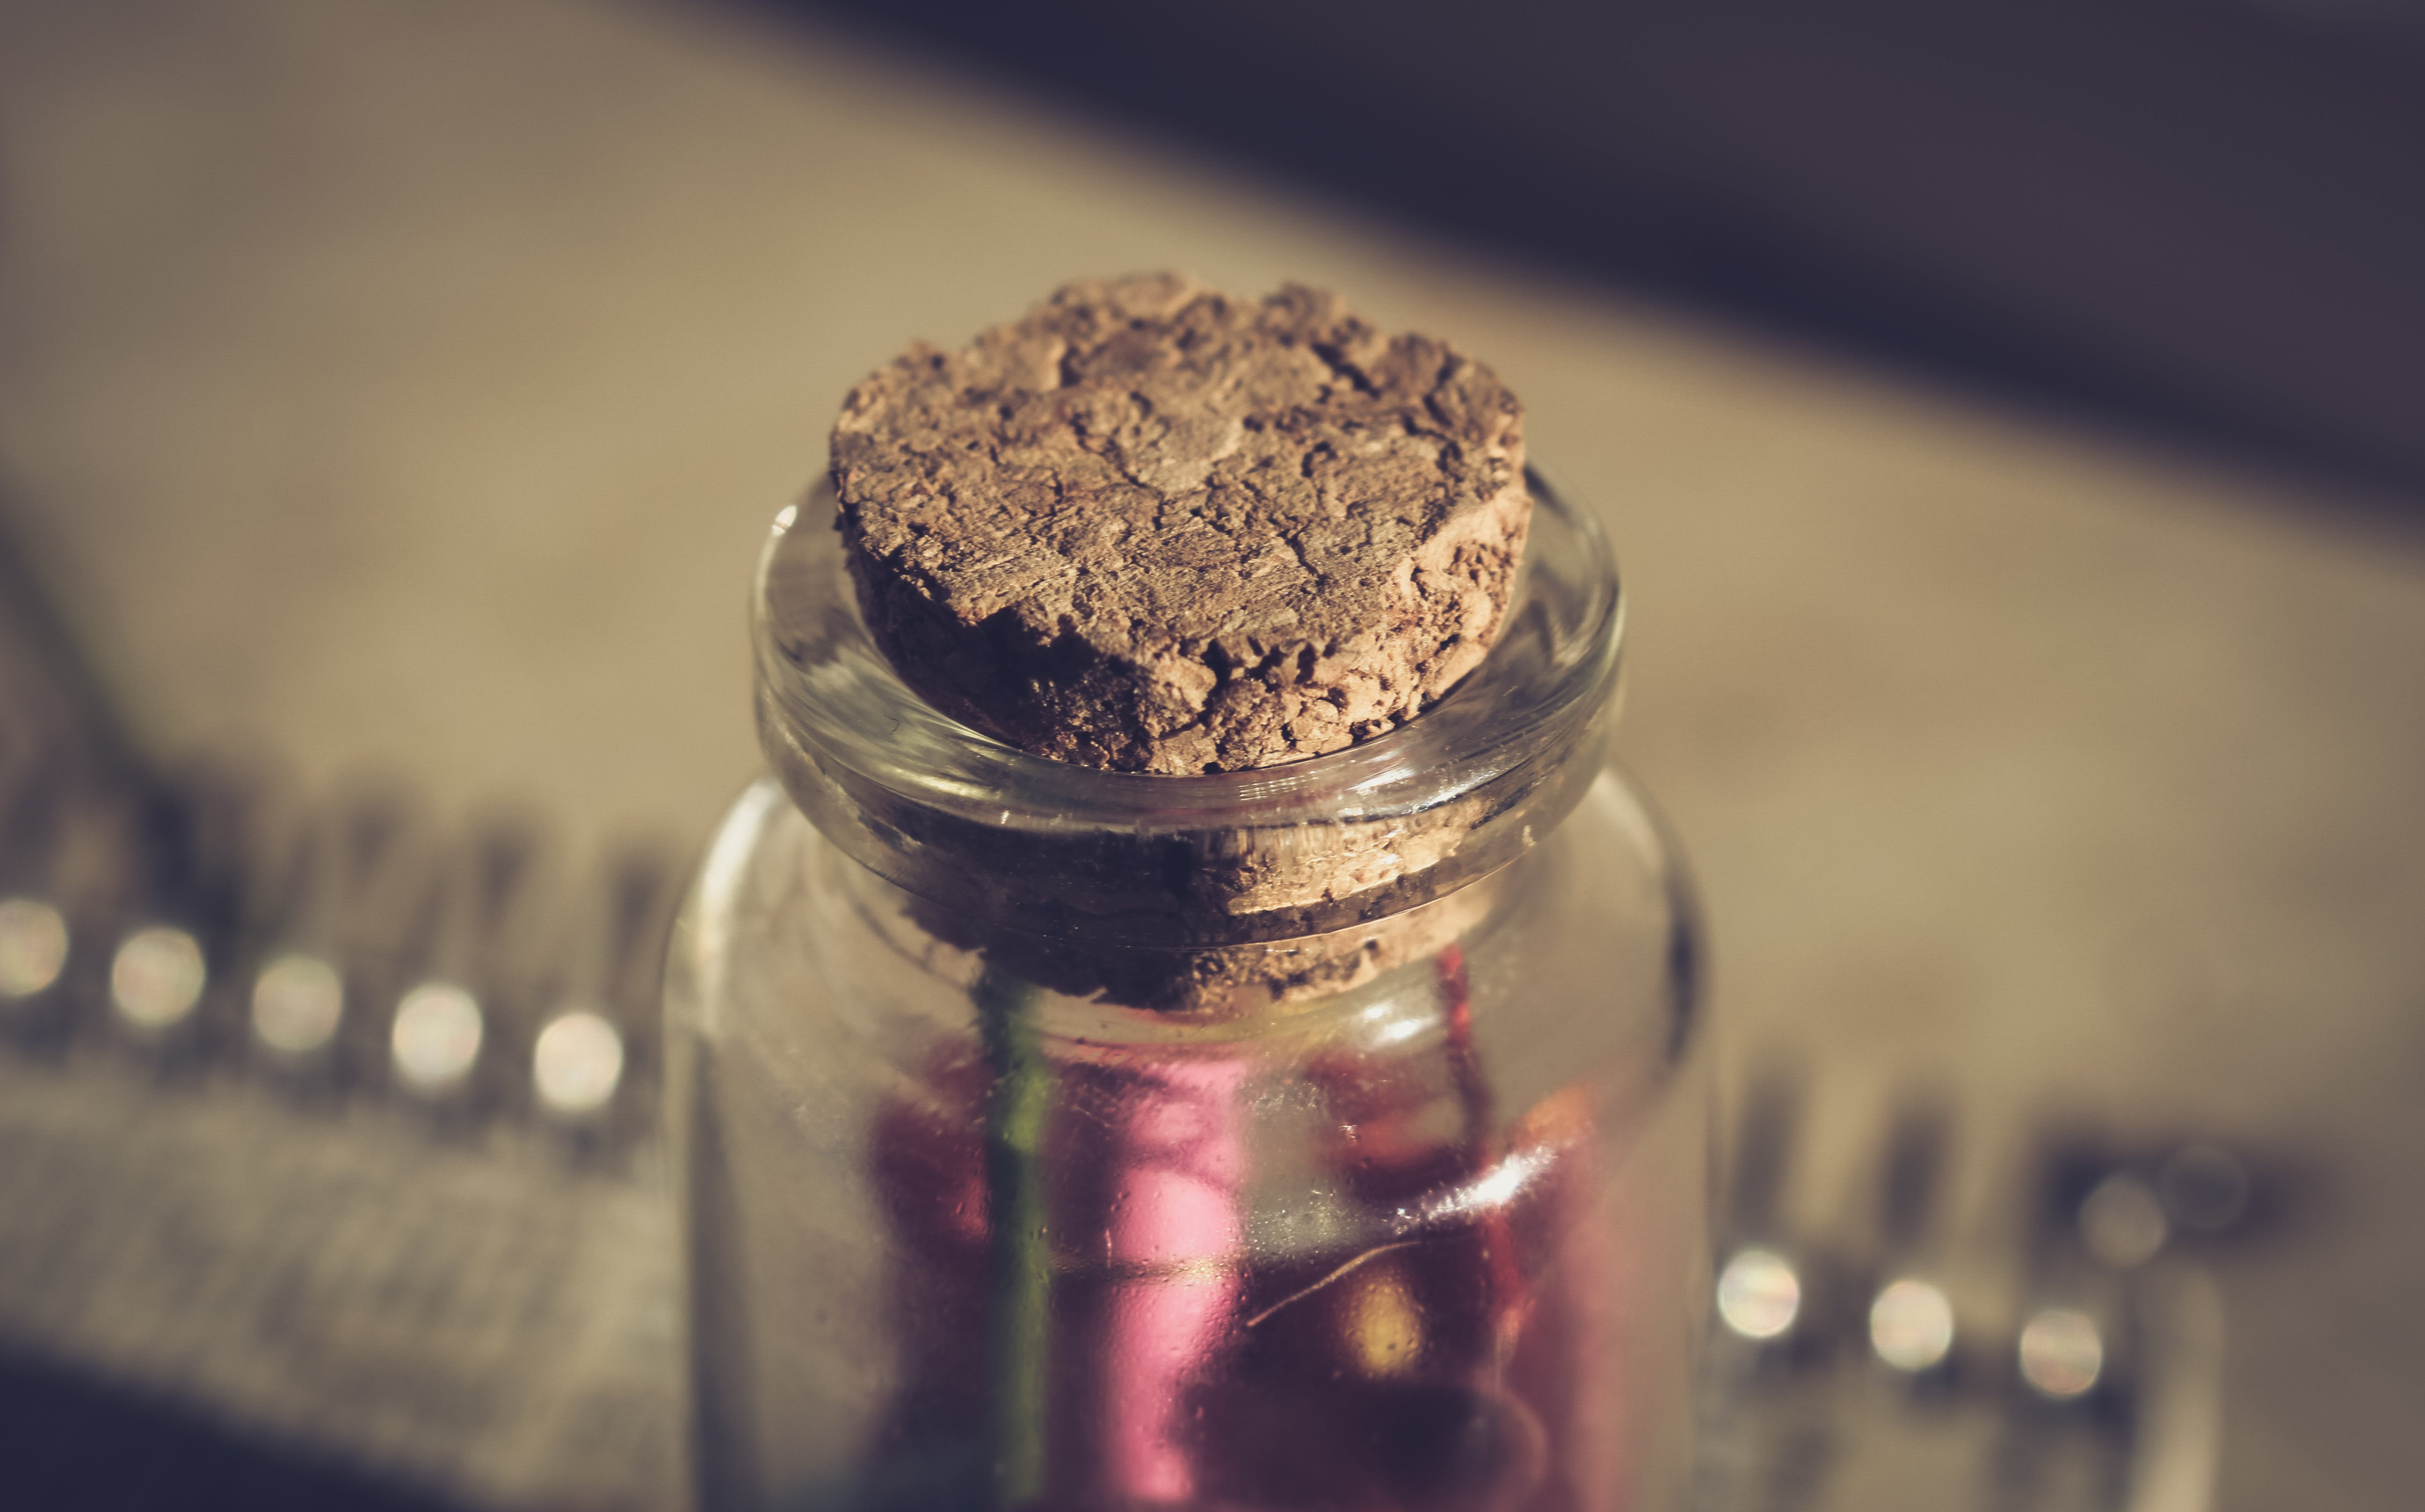 Selective Focus Photo of Bottle With Cork